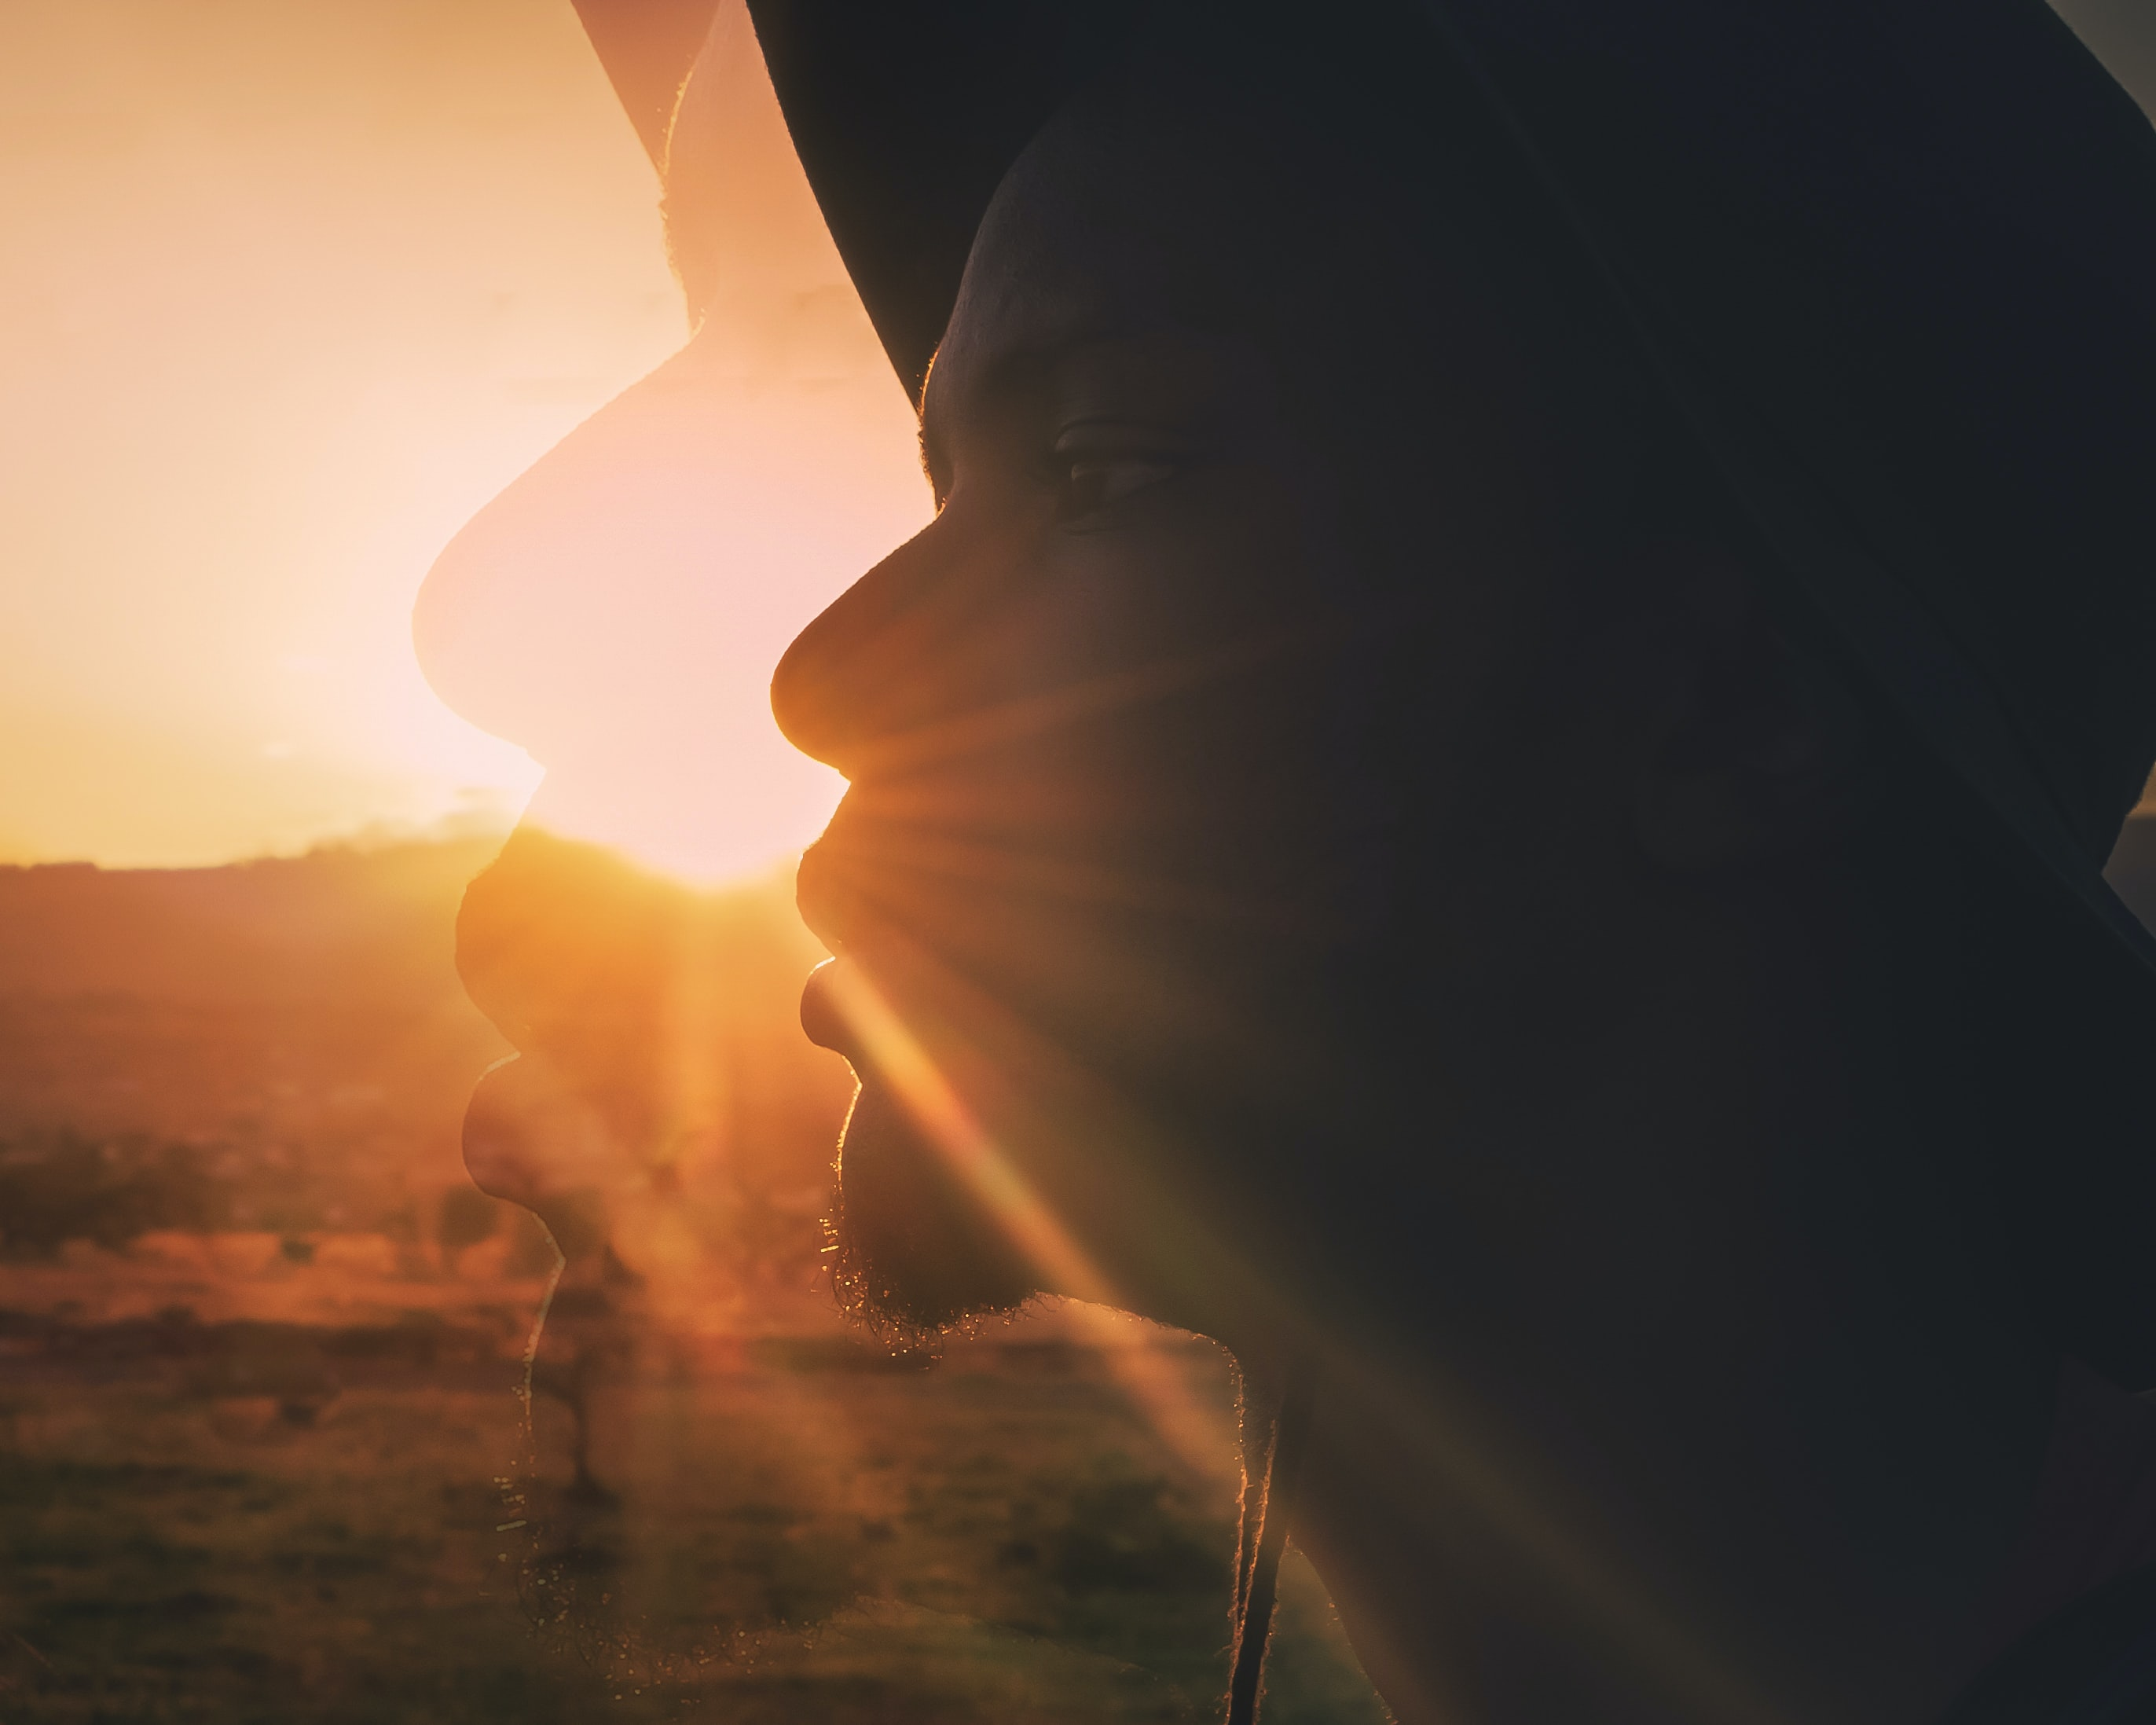 silhouette of person's face during golden hour